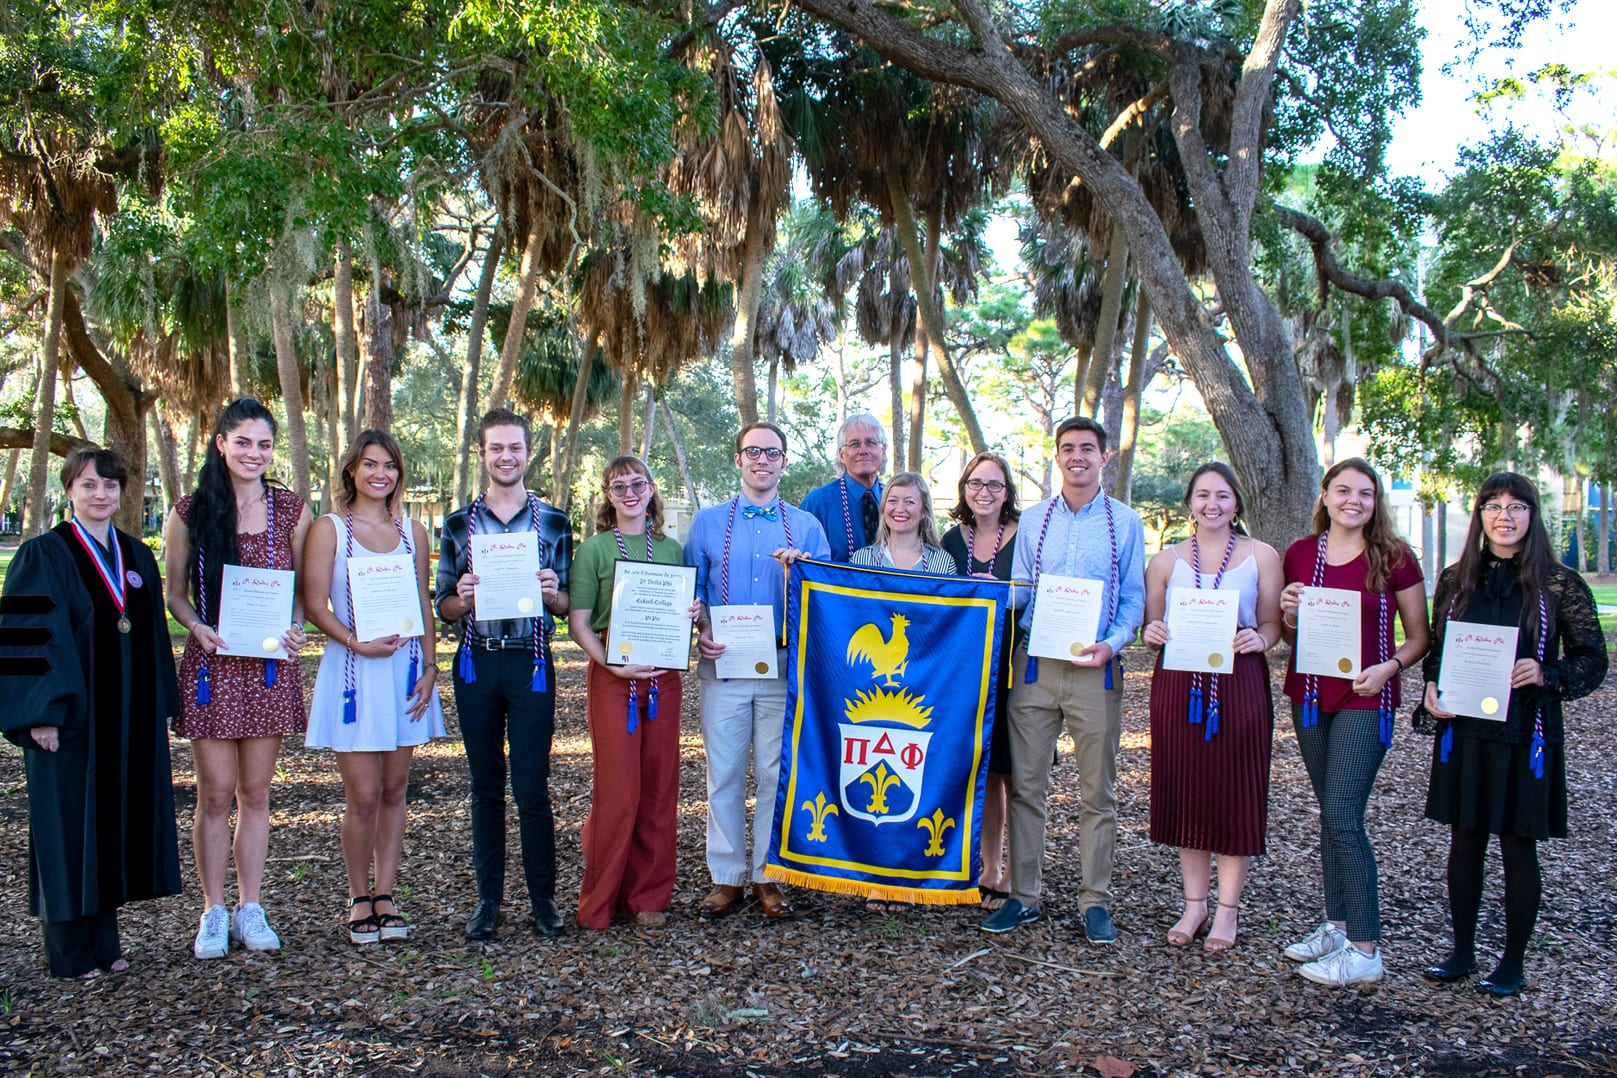 Faculty and students of Pi Delta Phi honor society standing in quad